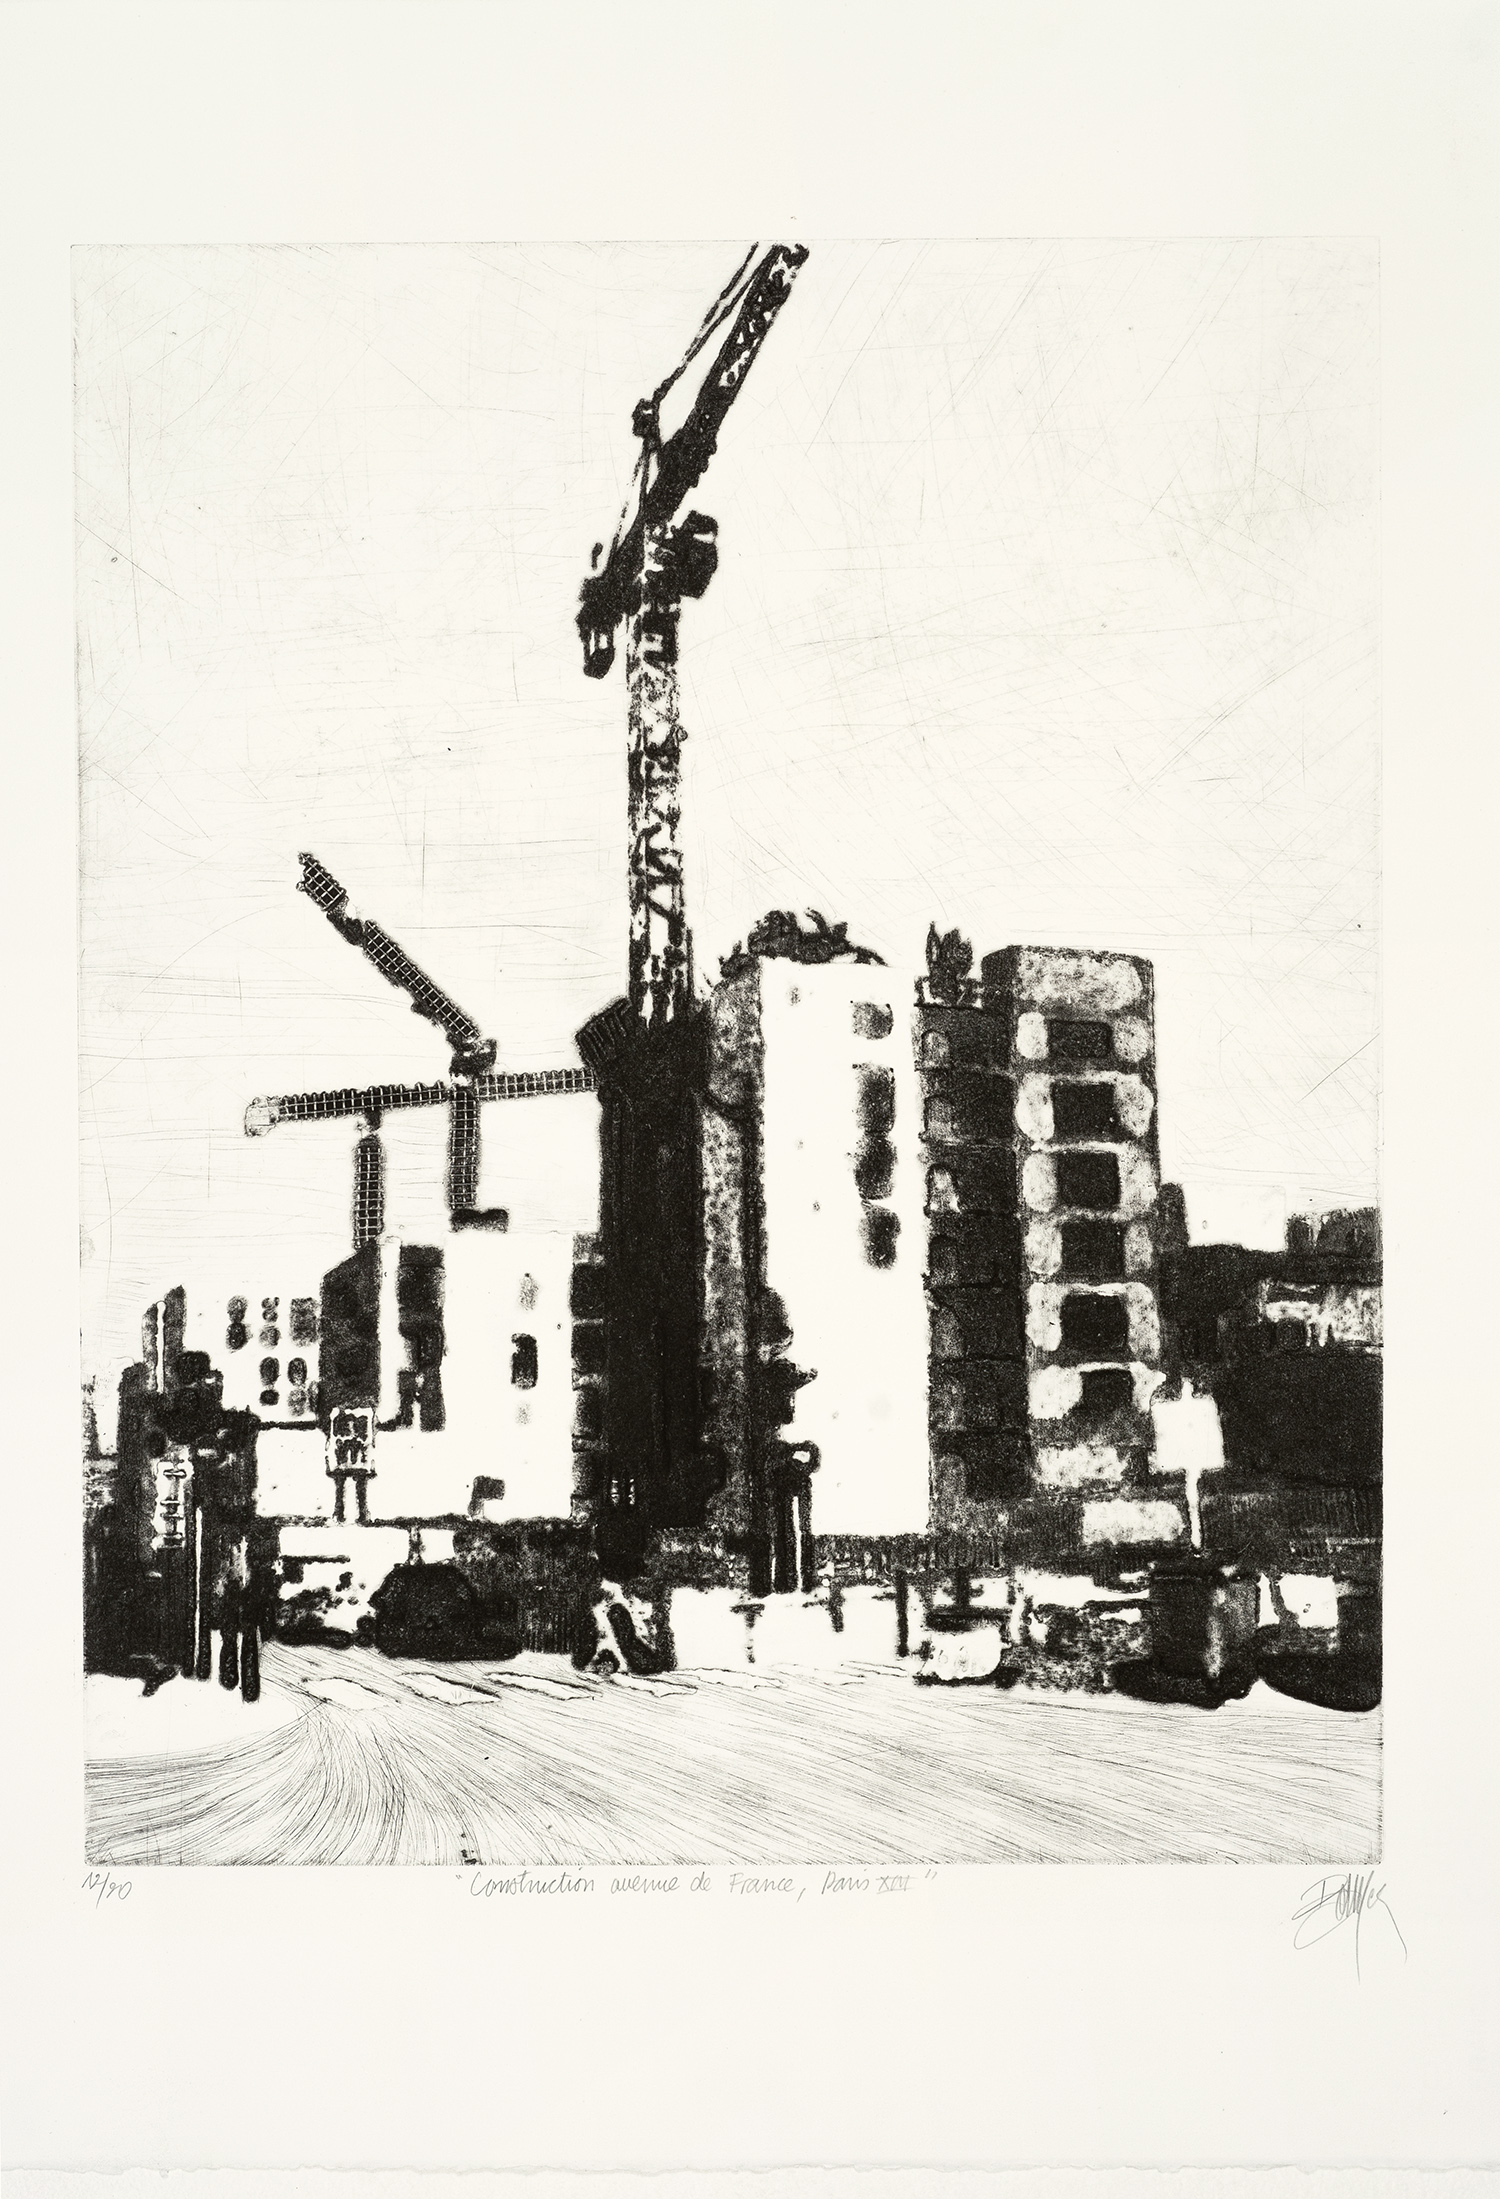 construction-av-de-france-paris-xiii